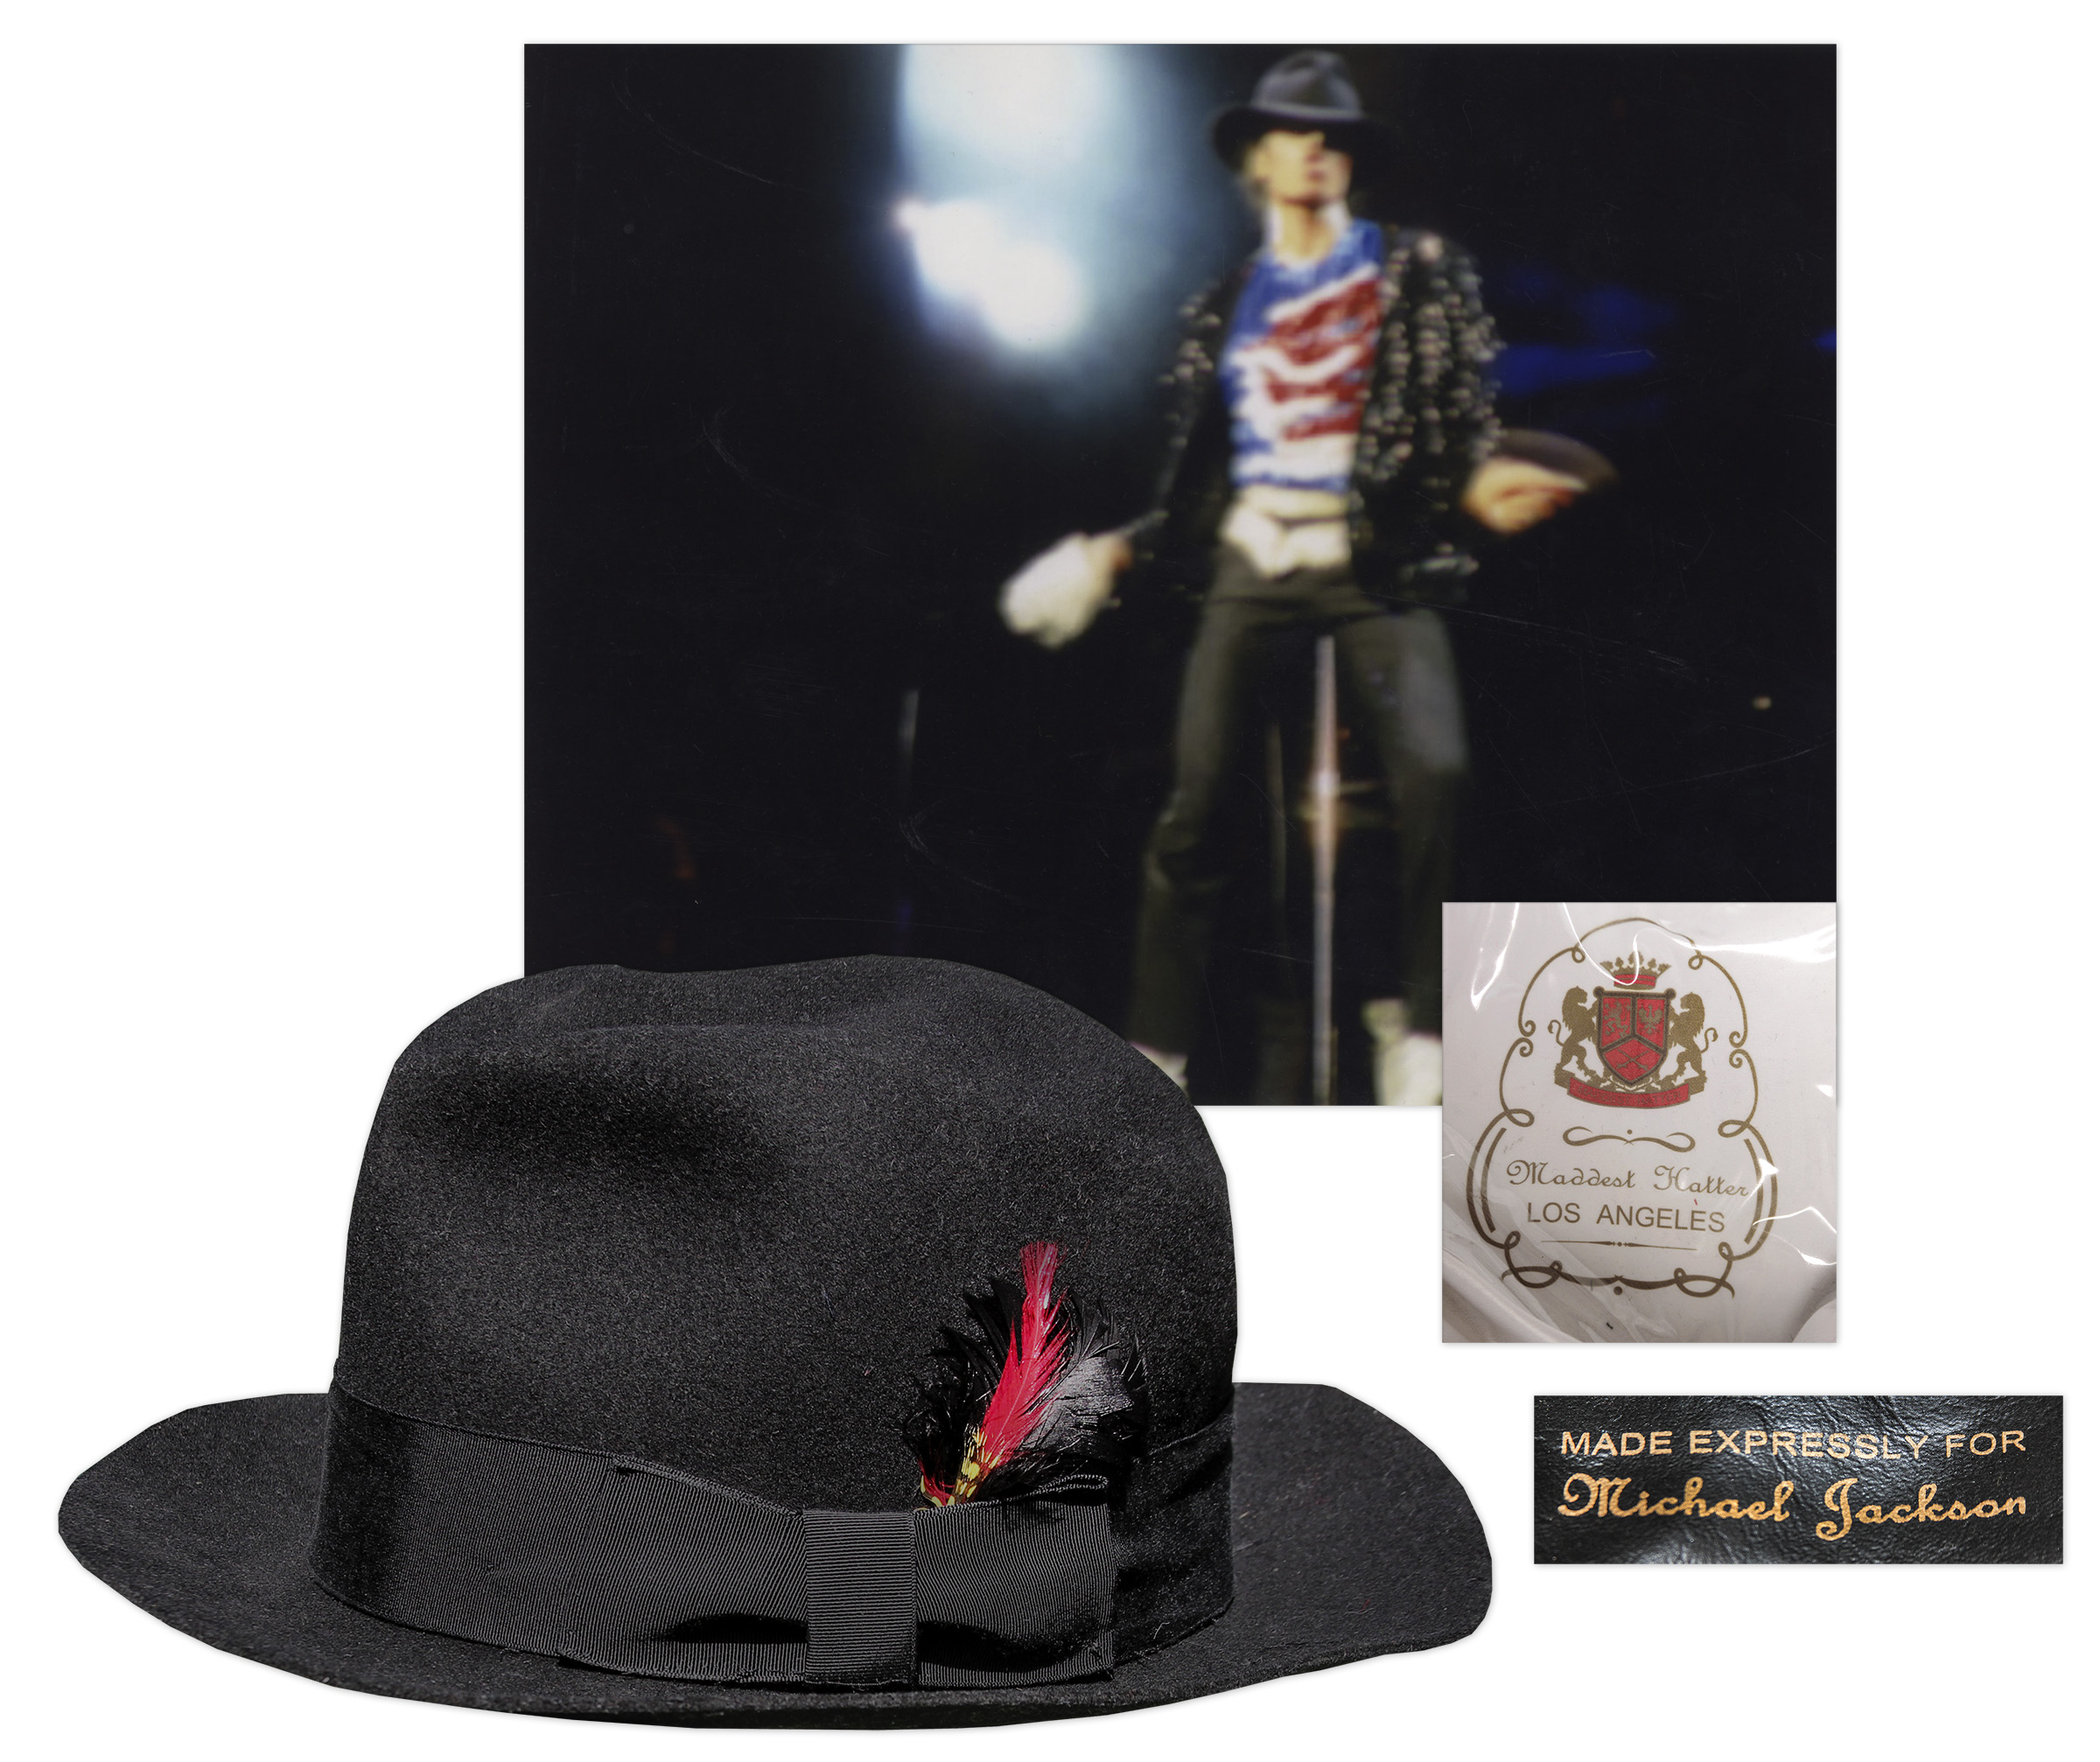 Michael Jackson Fedora worn by him Michael Jackson's Famous Stage-Worn Black Fedora -- From 1984 ''Victory'' Tour